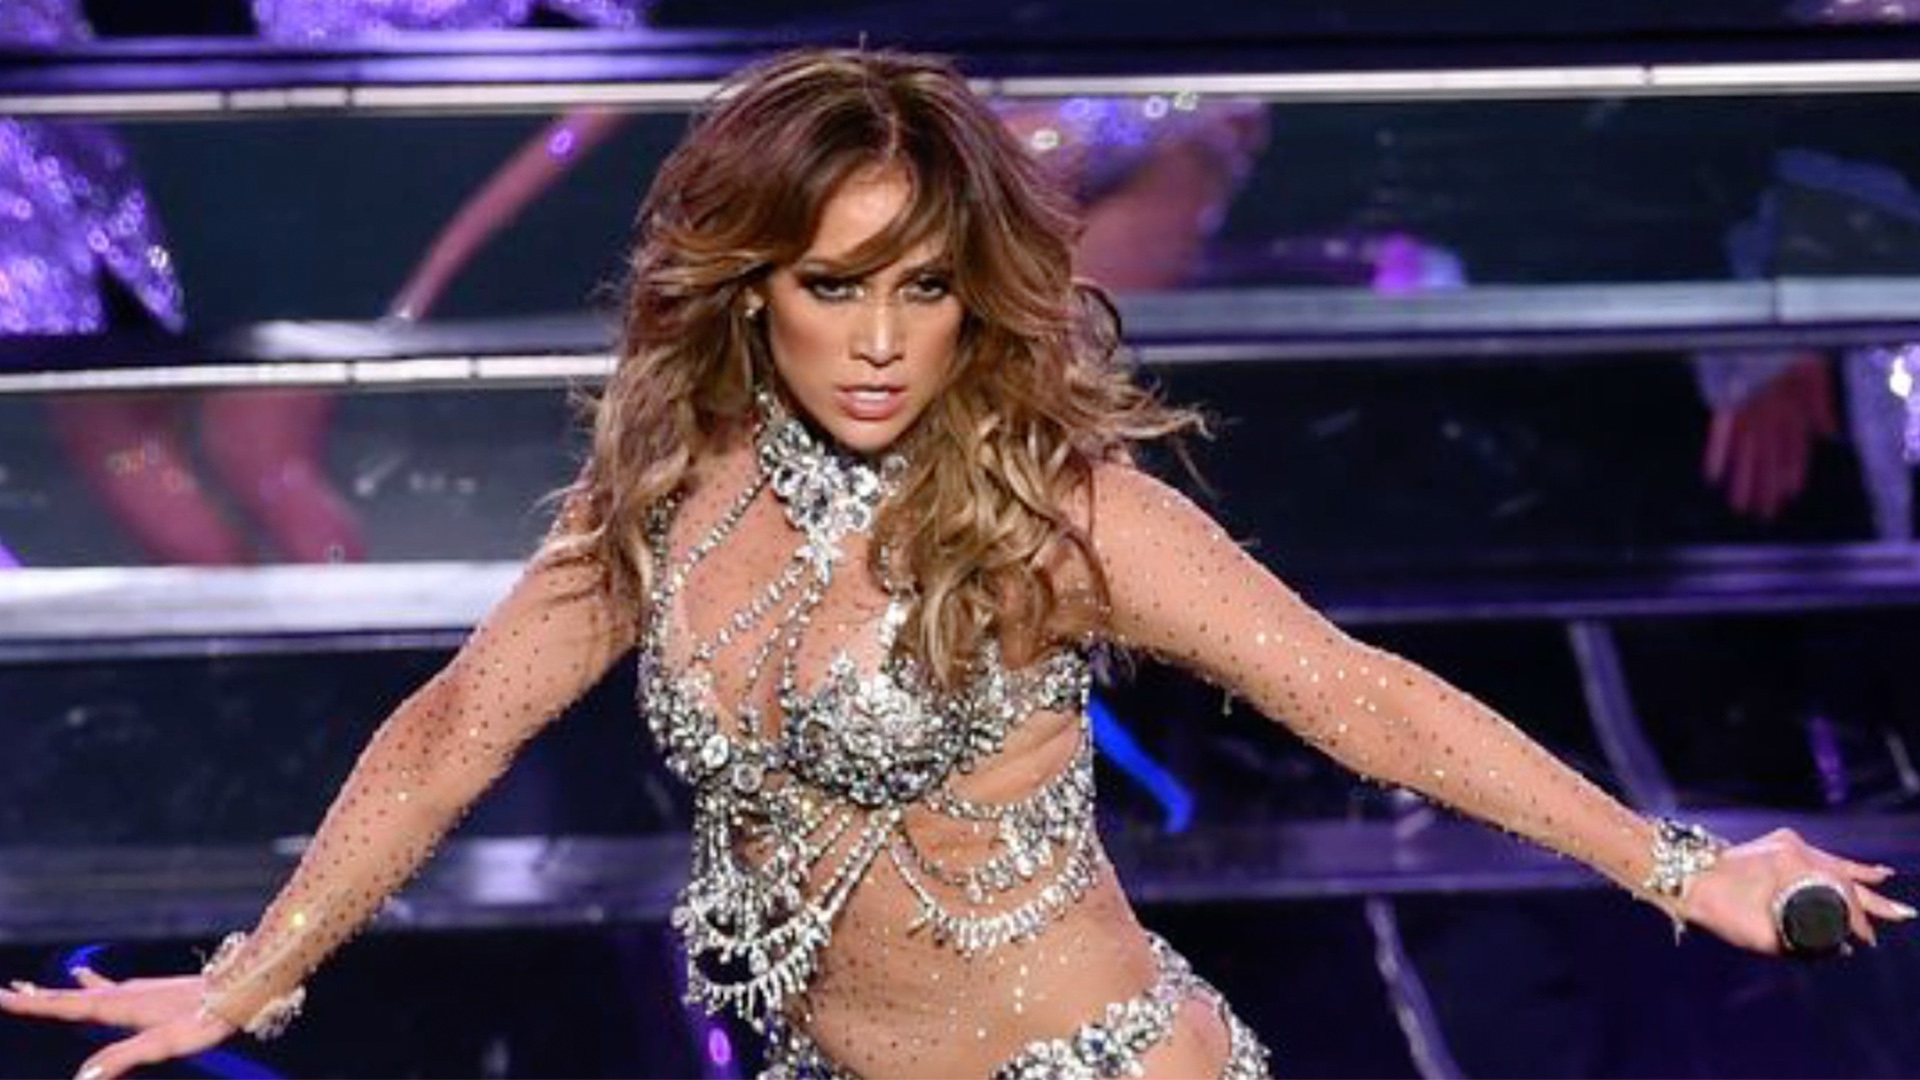 Host Jennifer Lopez opens the show with a dance medley of the year's biggest hits at the American Music Awards.